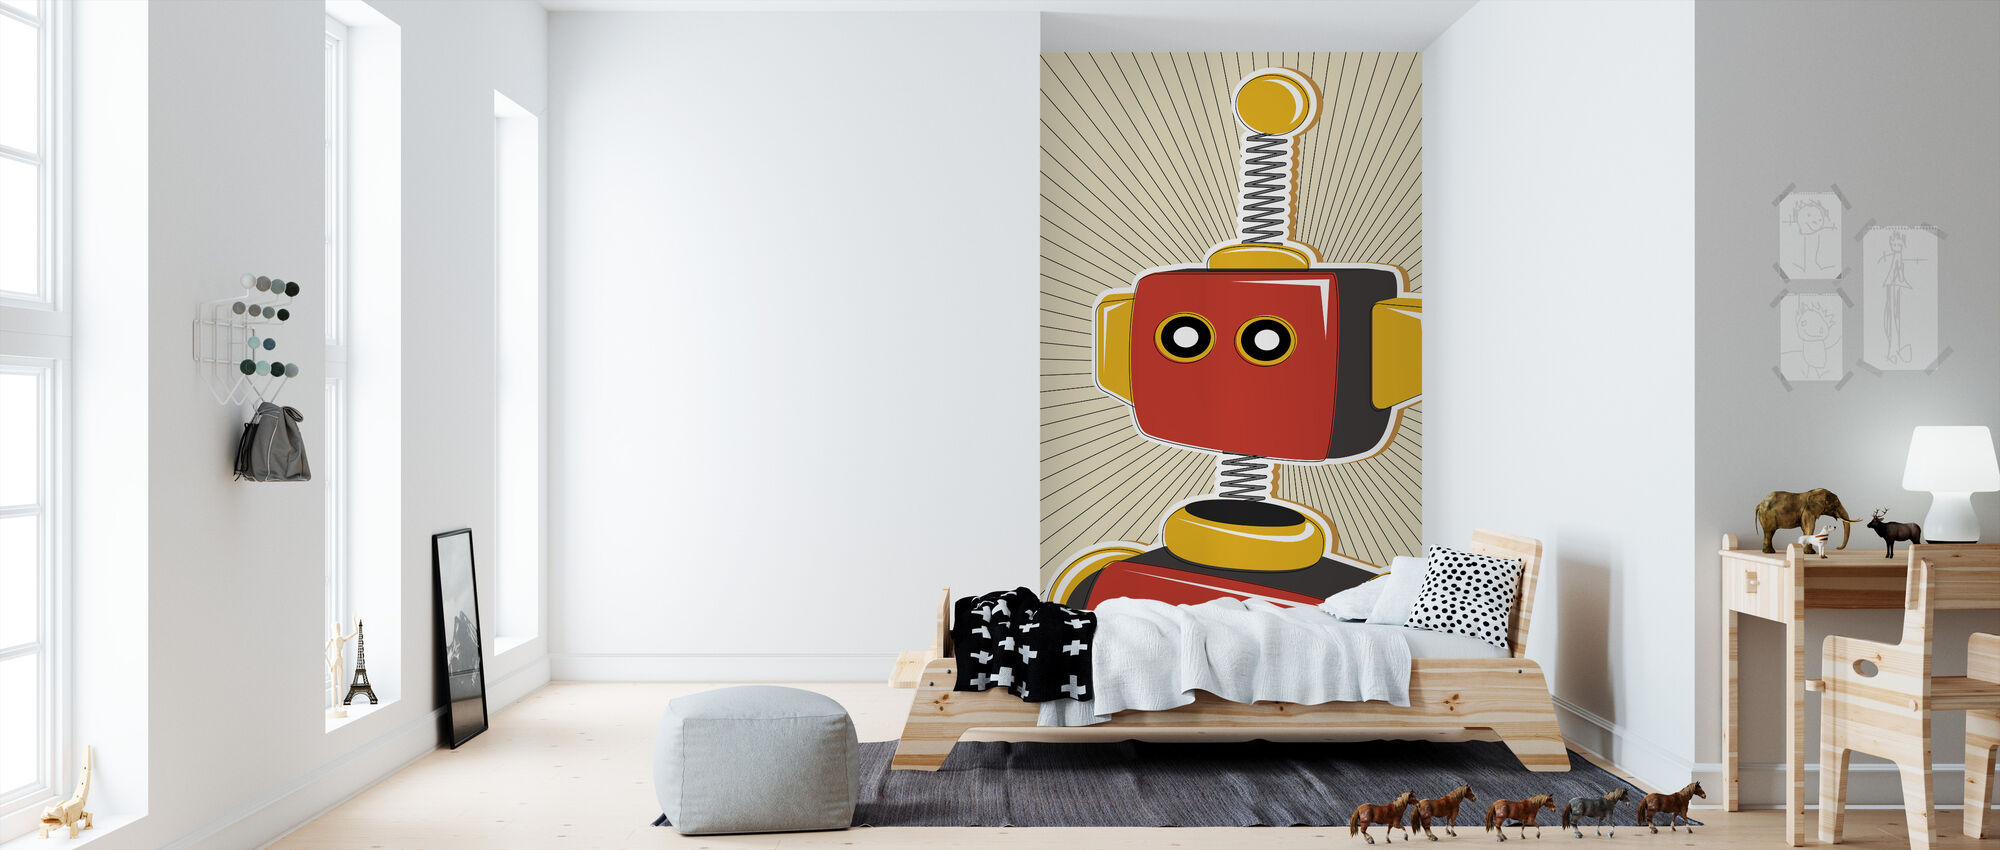 Retro Robot - Wallpaper - Kids Room